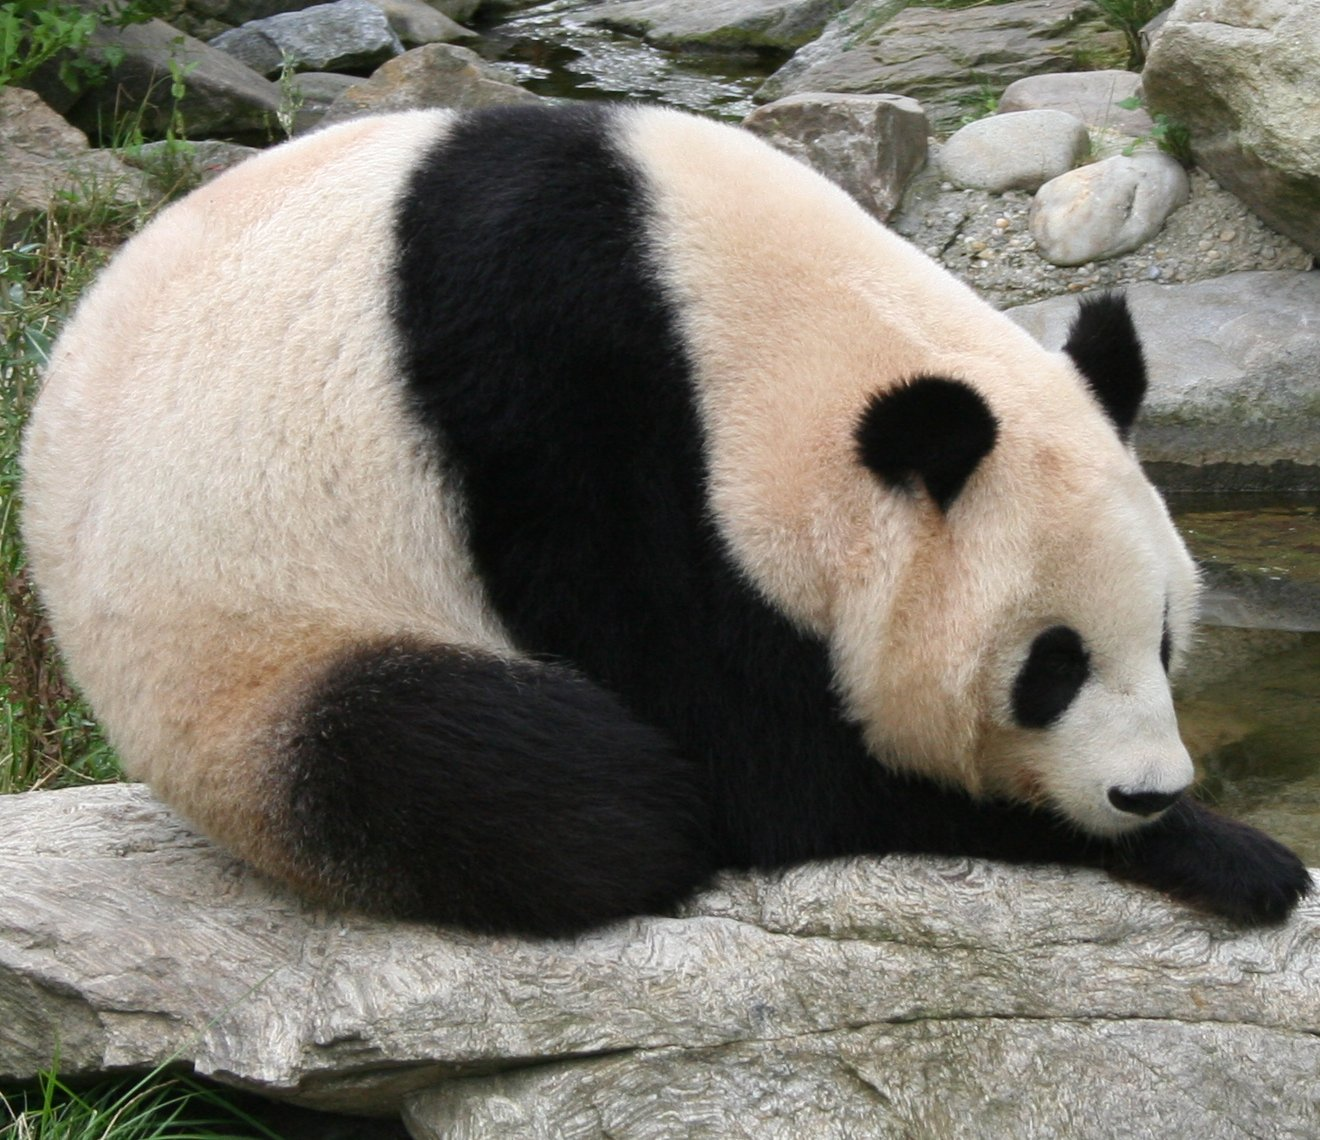 http://upload.wikimedia.org/wikipedia/commons/1/19/Giant_panda_at_Vienna_Zoo_%28cropped%29.jpg